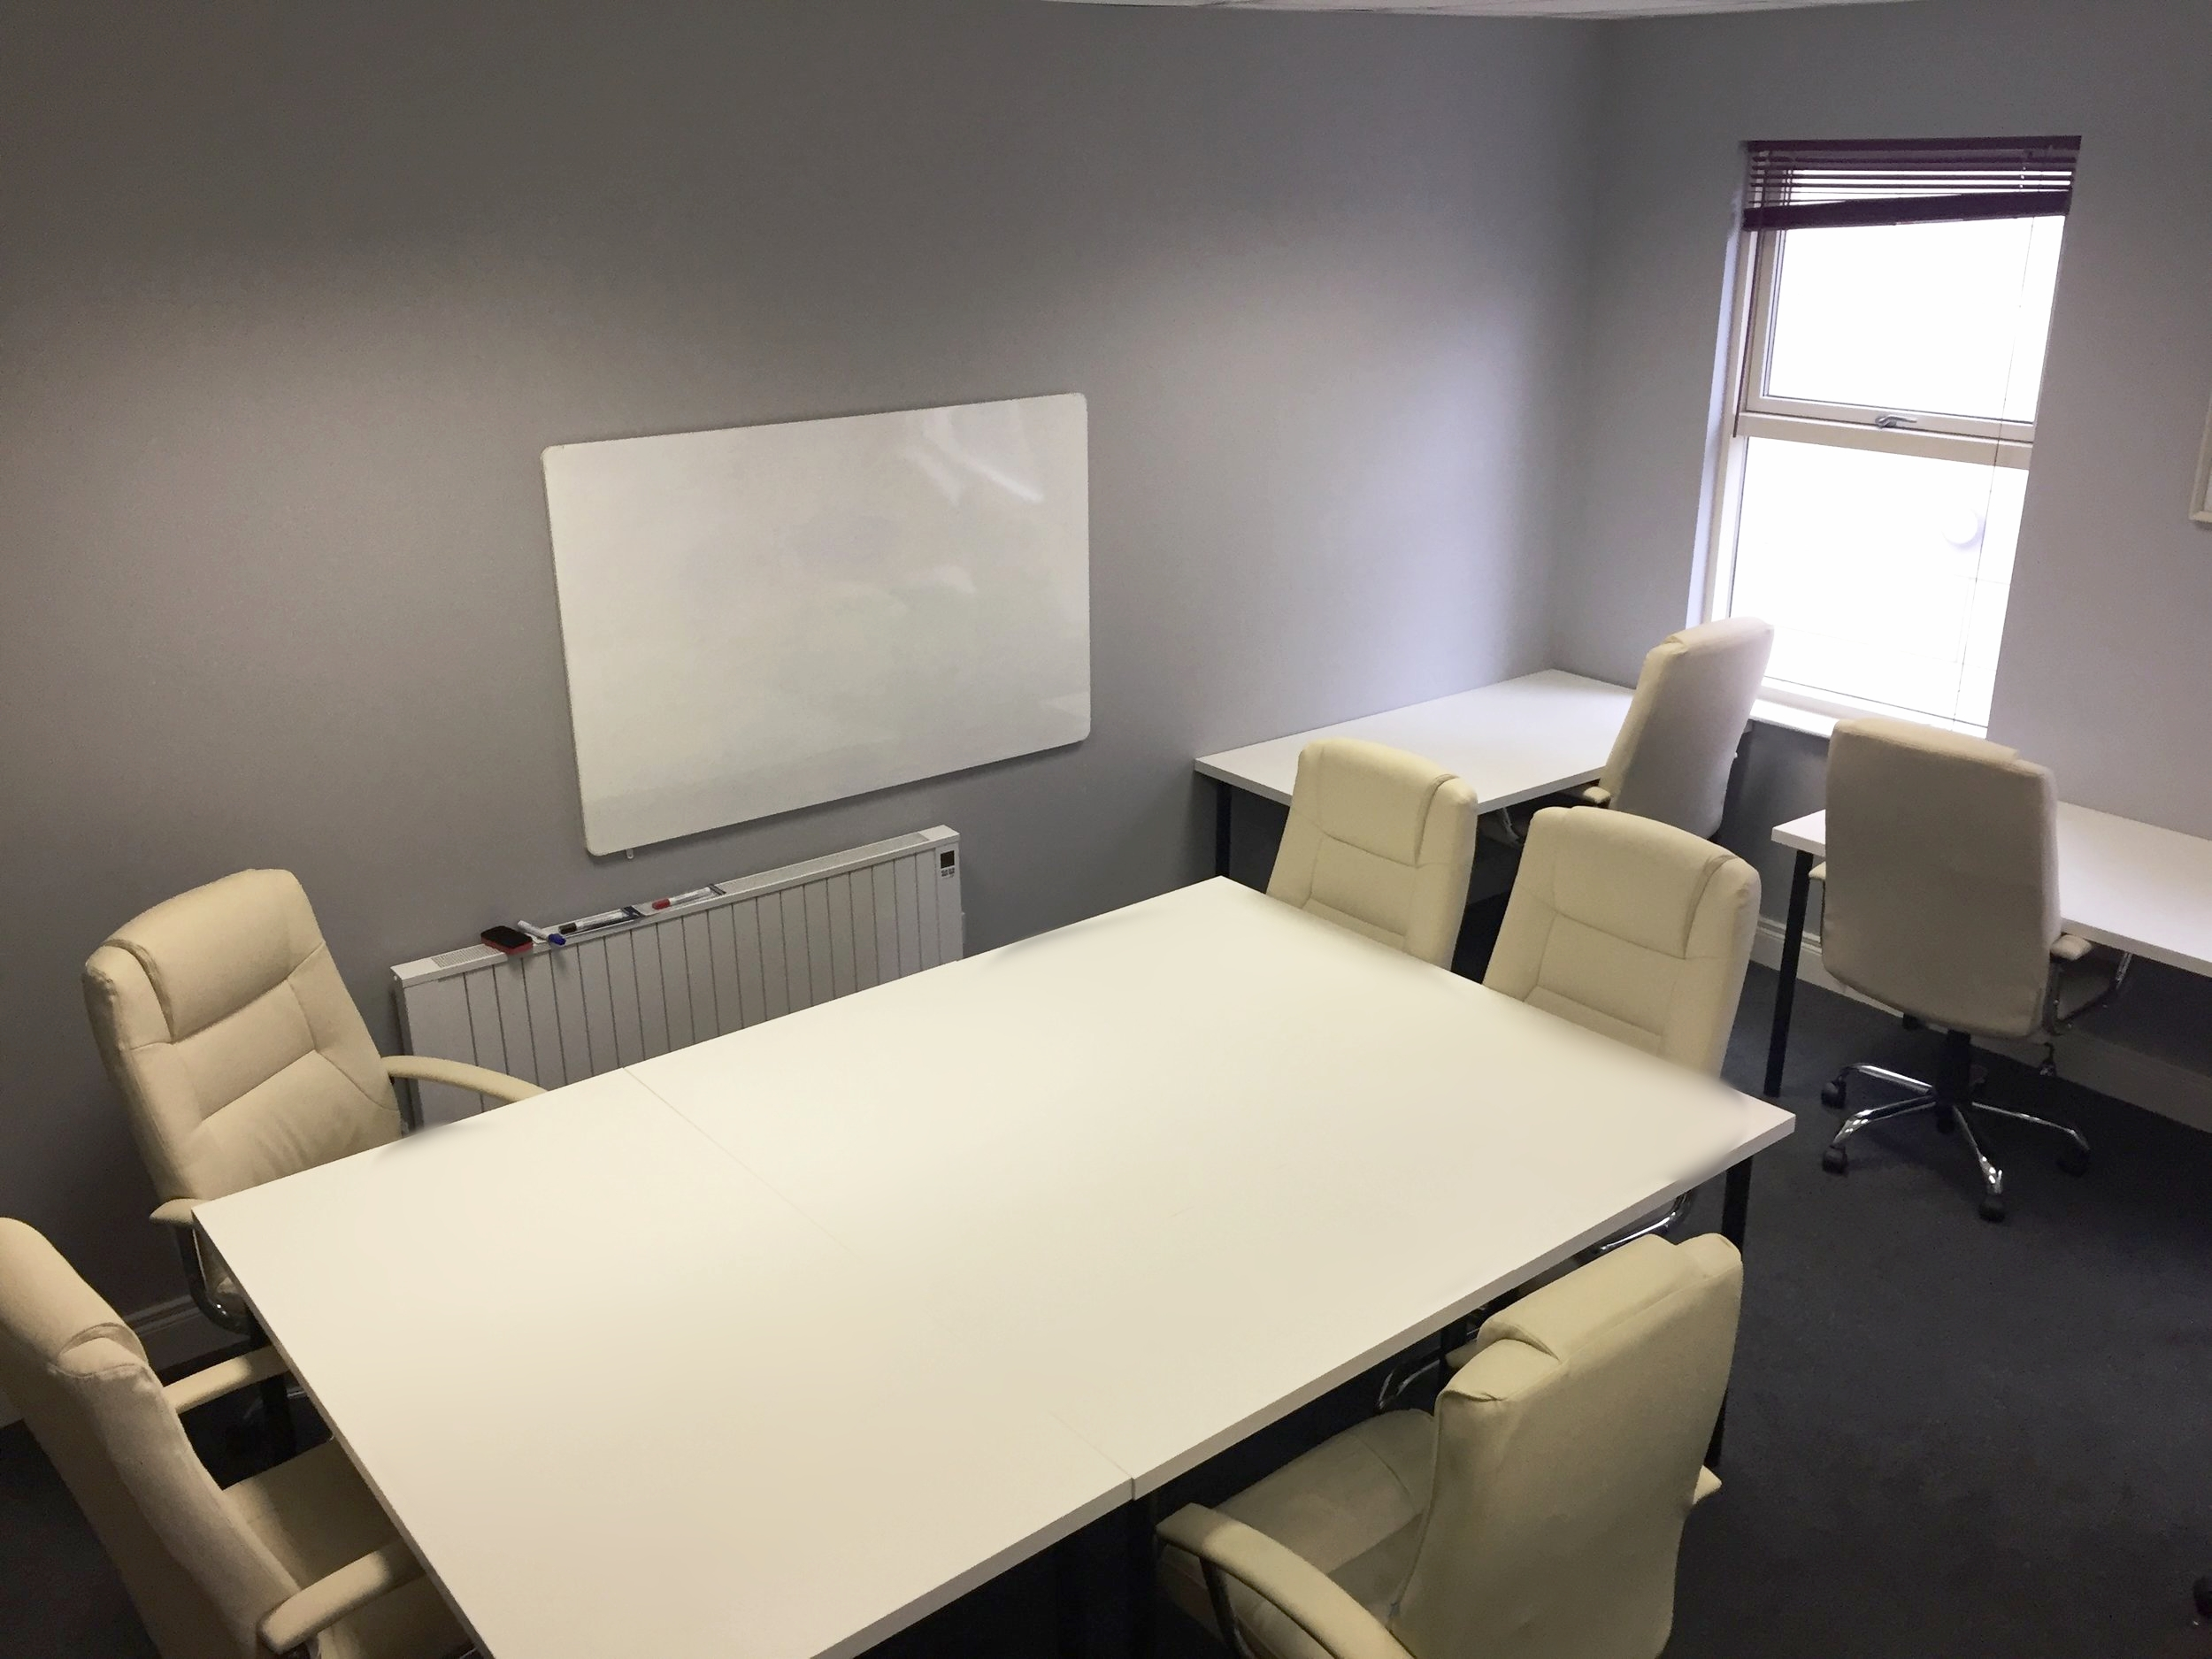 PRIVATE TEAM ROOM - €1500 per month